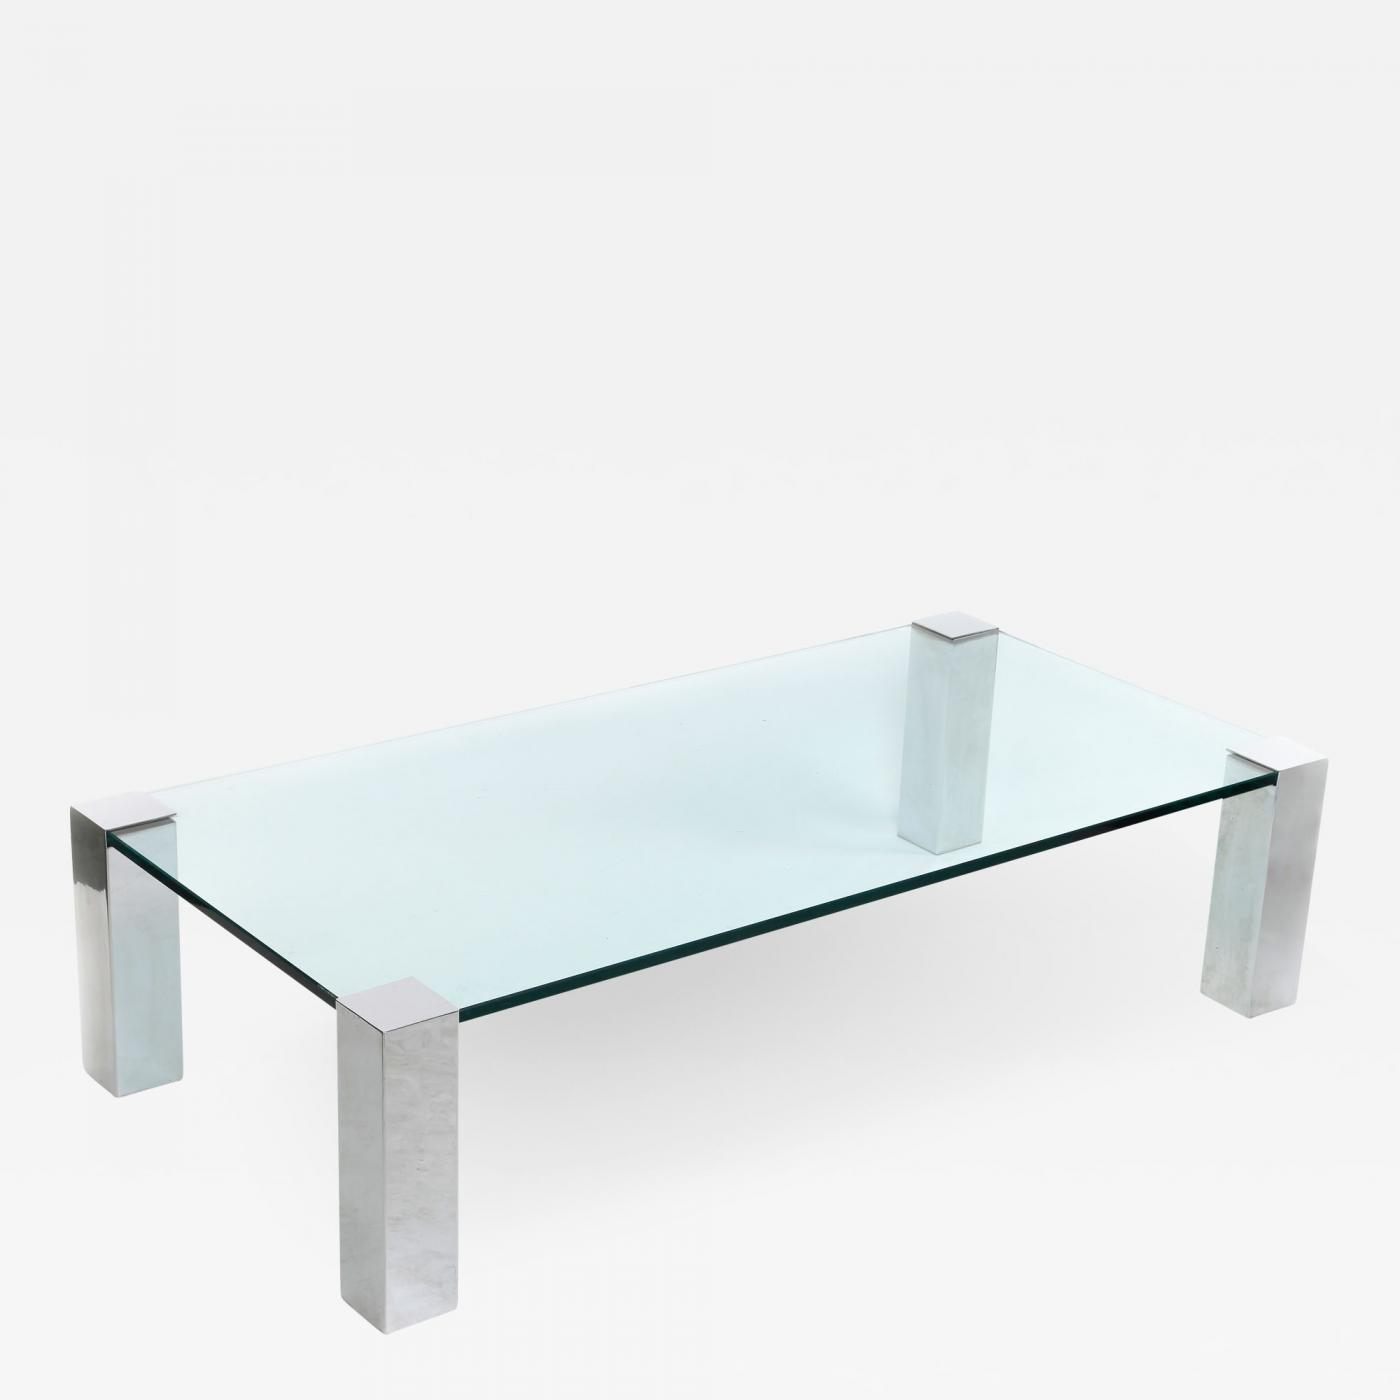 Willy Rizzo Coffee Table.Willy Rizzo Coffee Table By Willy Rizzo For Cidue Italy